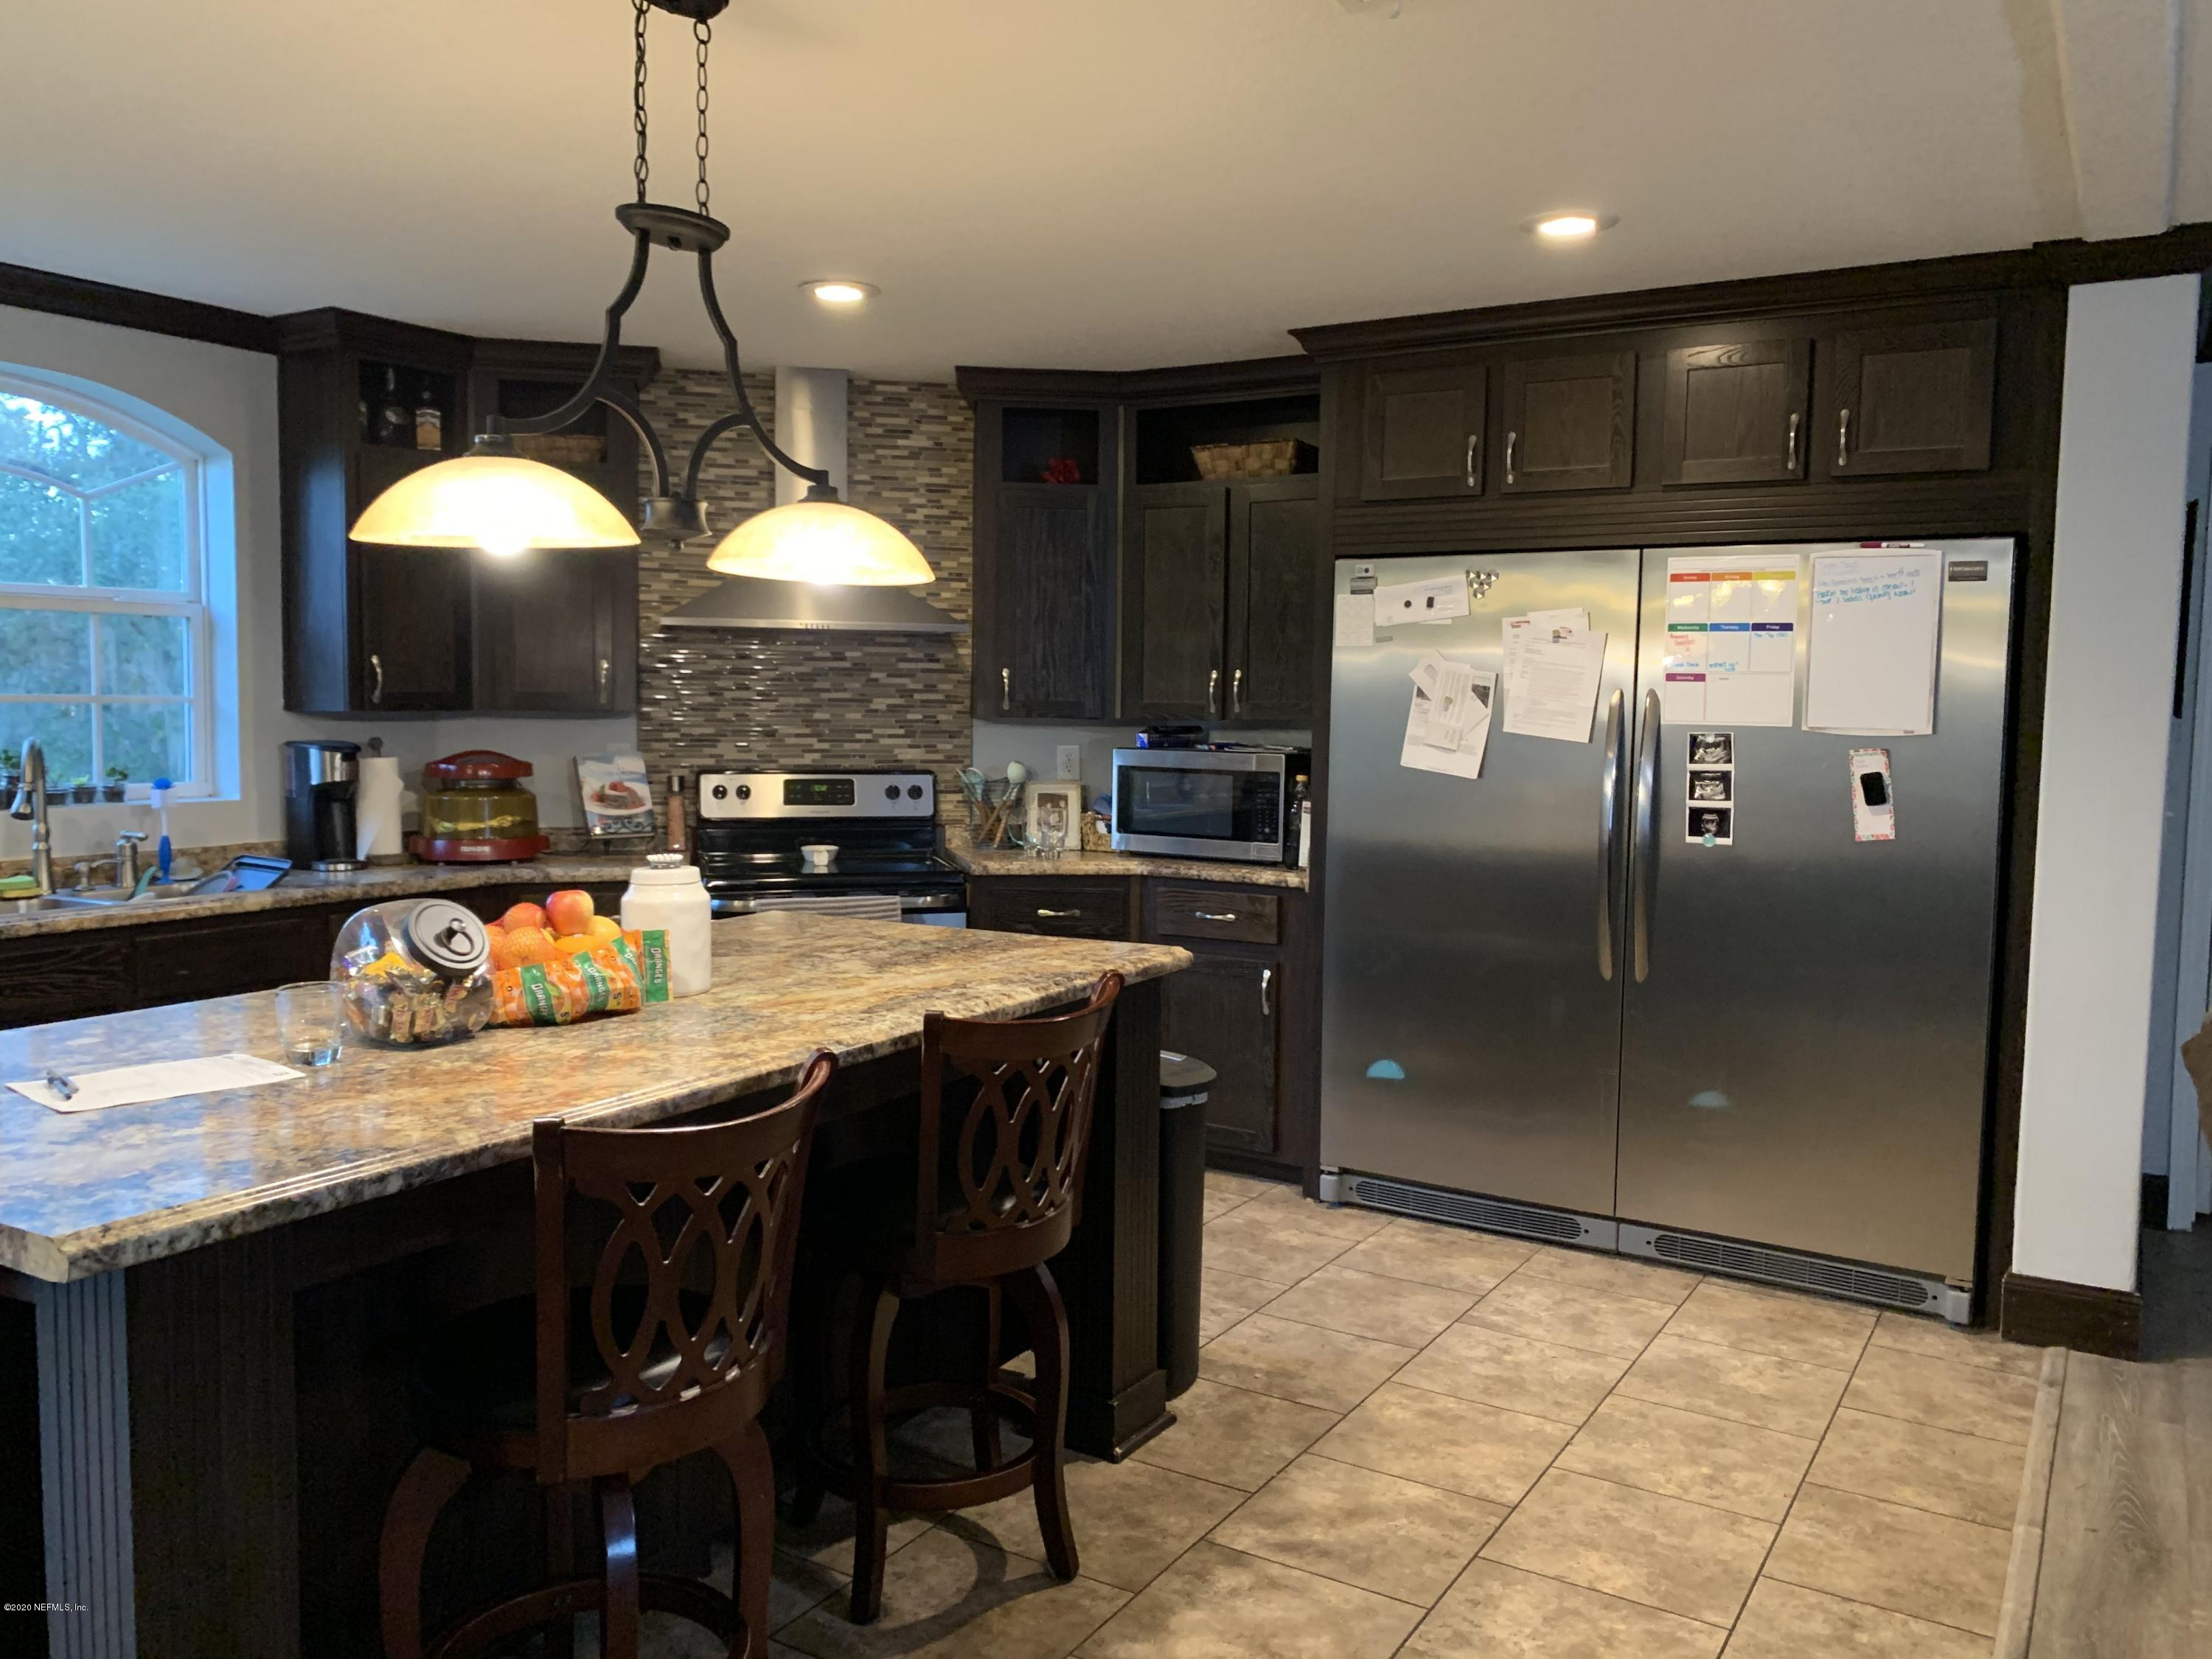 190 WHIRLWIND, HAWTHORNE, FLORIDA 32640, 4 Bedrooms Bedrooms, ,2 BathroomsBathrooms,Residential,For sale,WHIRLWIND,1083365